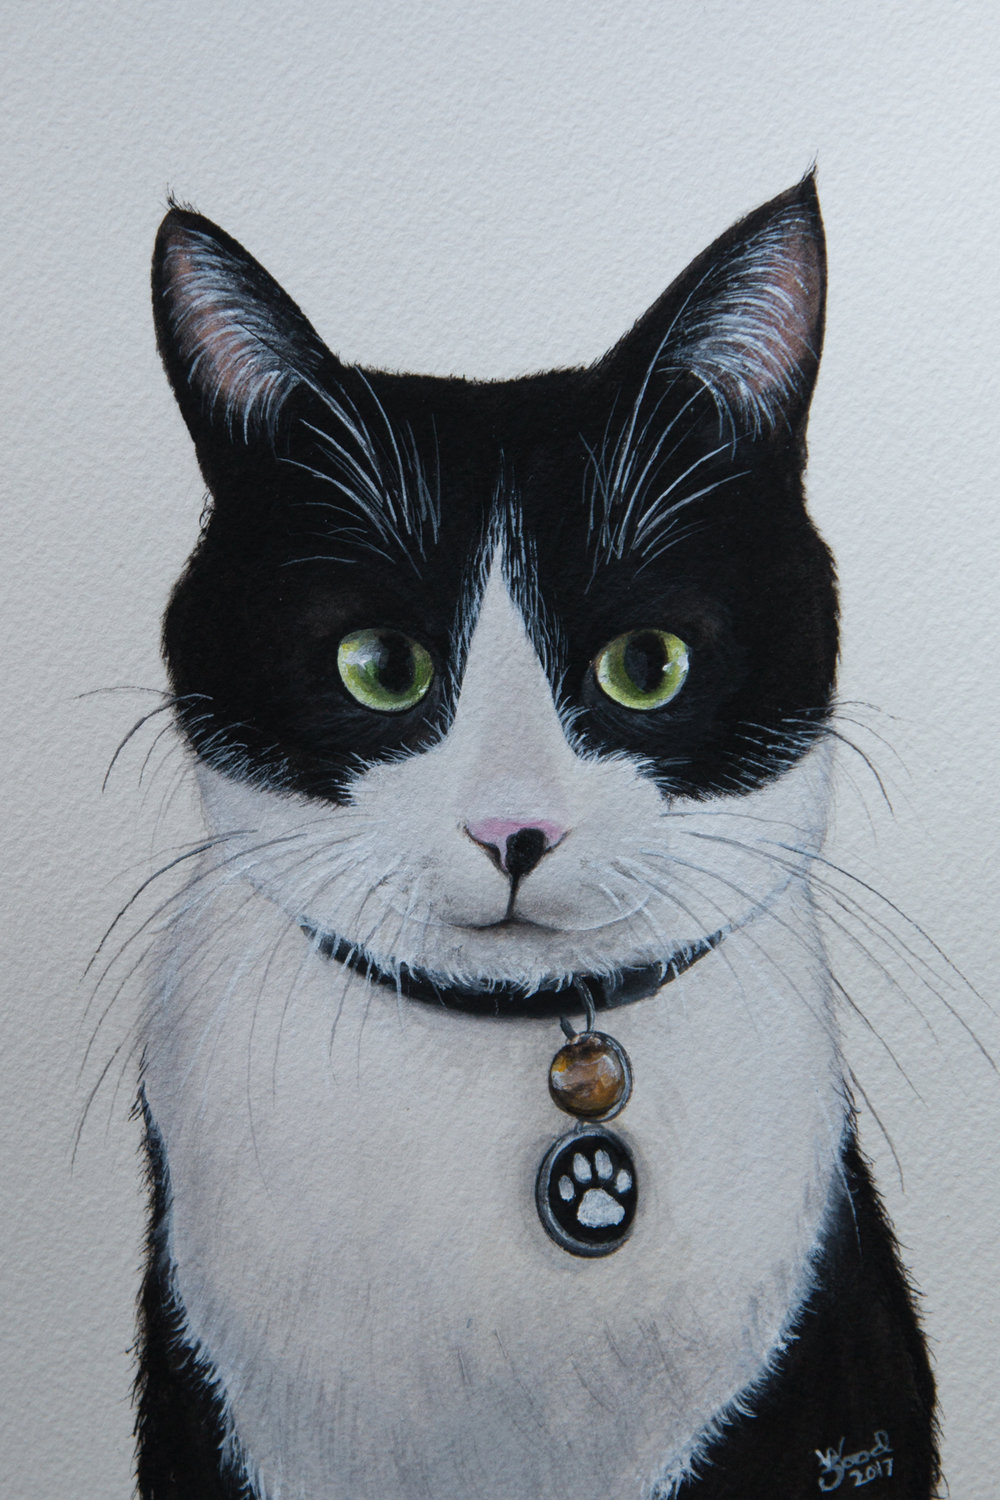 """We couldn't have been more thrilled with the portrait of our dear Smudge. What we love most is the way Zoe captured her eyes so realistically (they're a bit googly) and her Batman mask on her face. I would recommend Zoe's incredible artistic talents without hesitation to anyone wanting to immortalise their special furry friend."" -  Matthew and Toby, Williamstown"